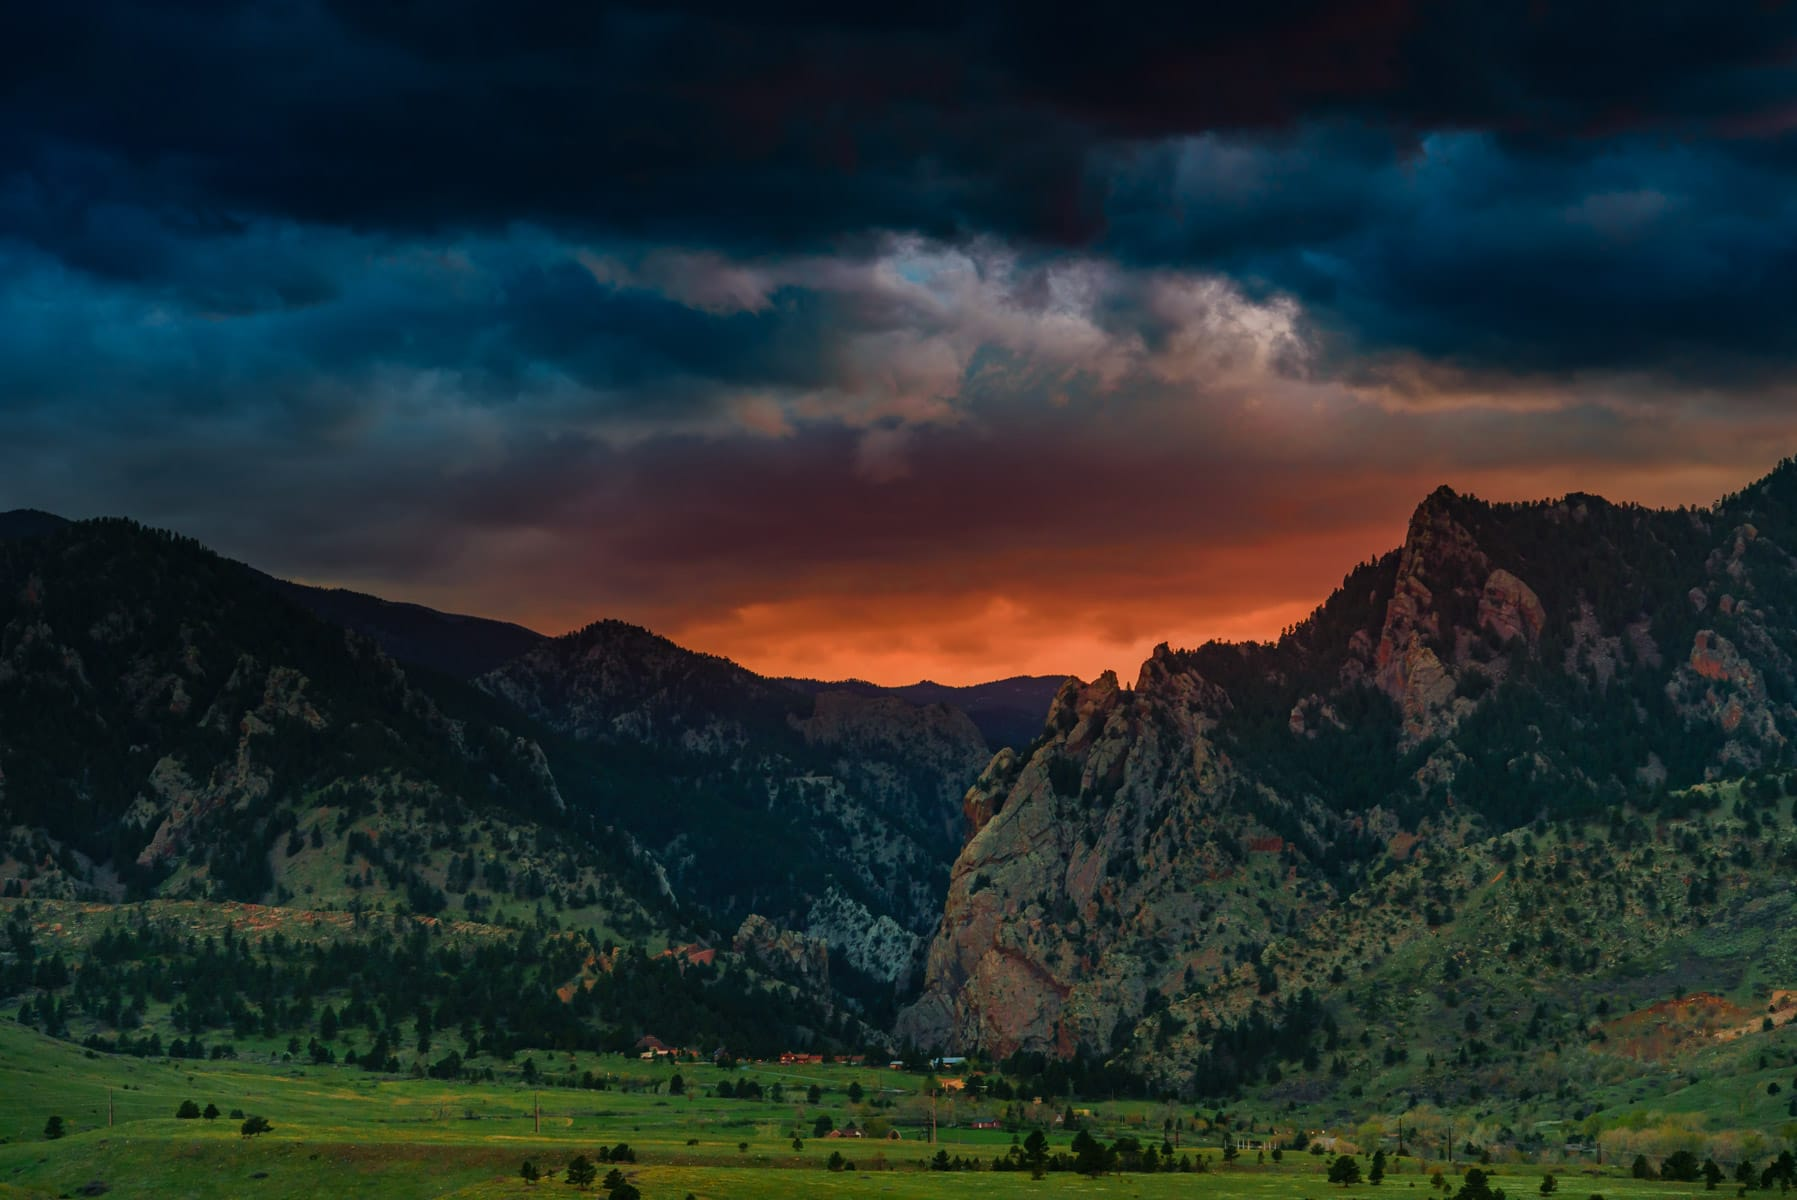 The sun sets on the far side of the Rocky Mountains near Boulder, Colorado.